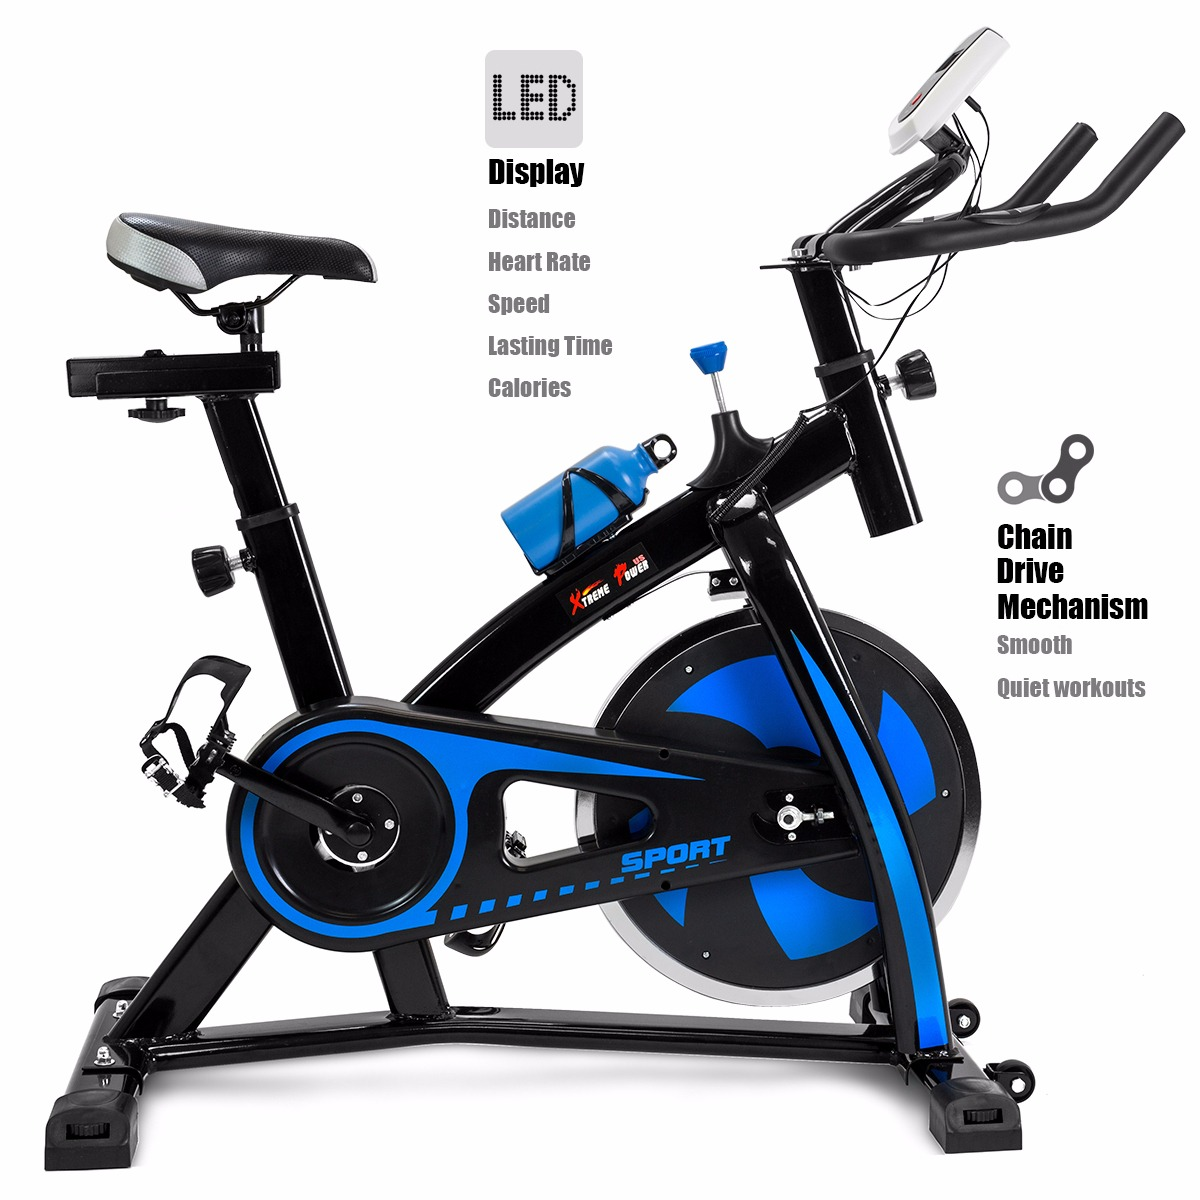 XtremepowerUS Exercise Bike Stationary Cycling Cardio Workout Fitness LED Screen